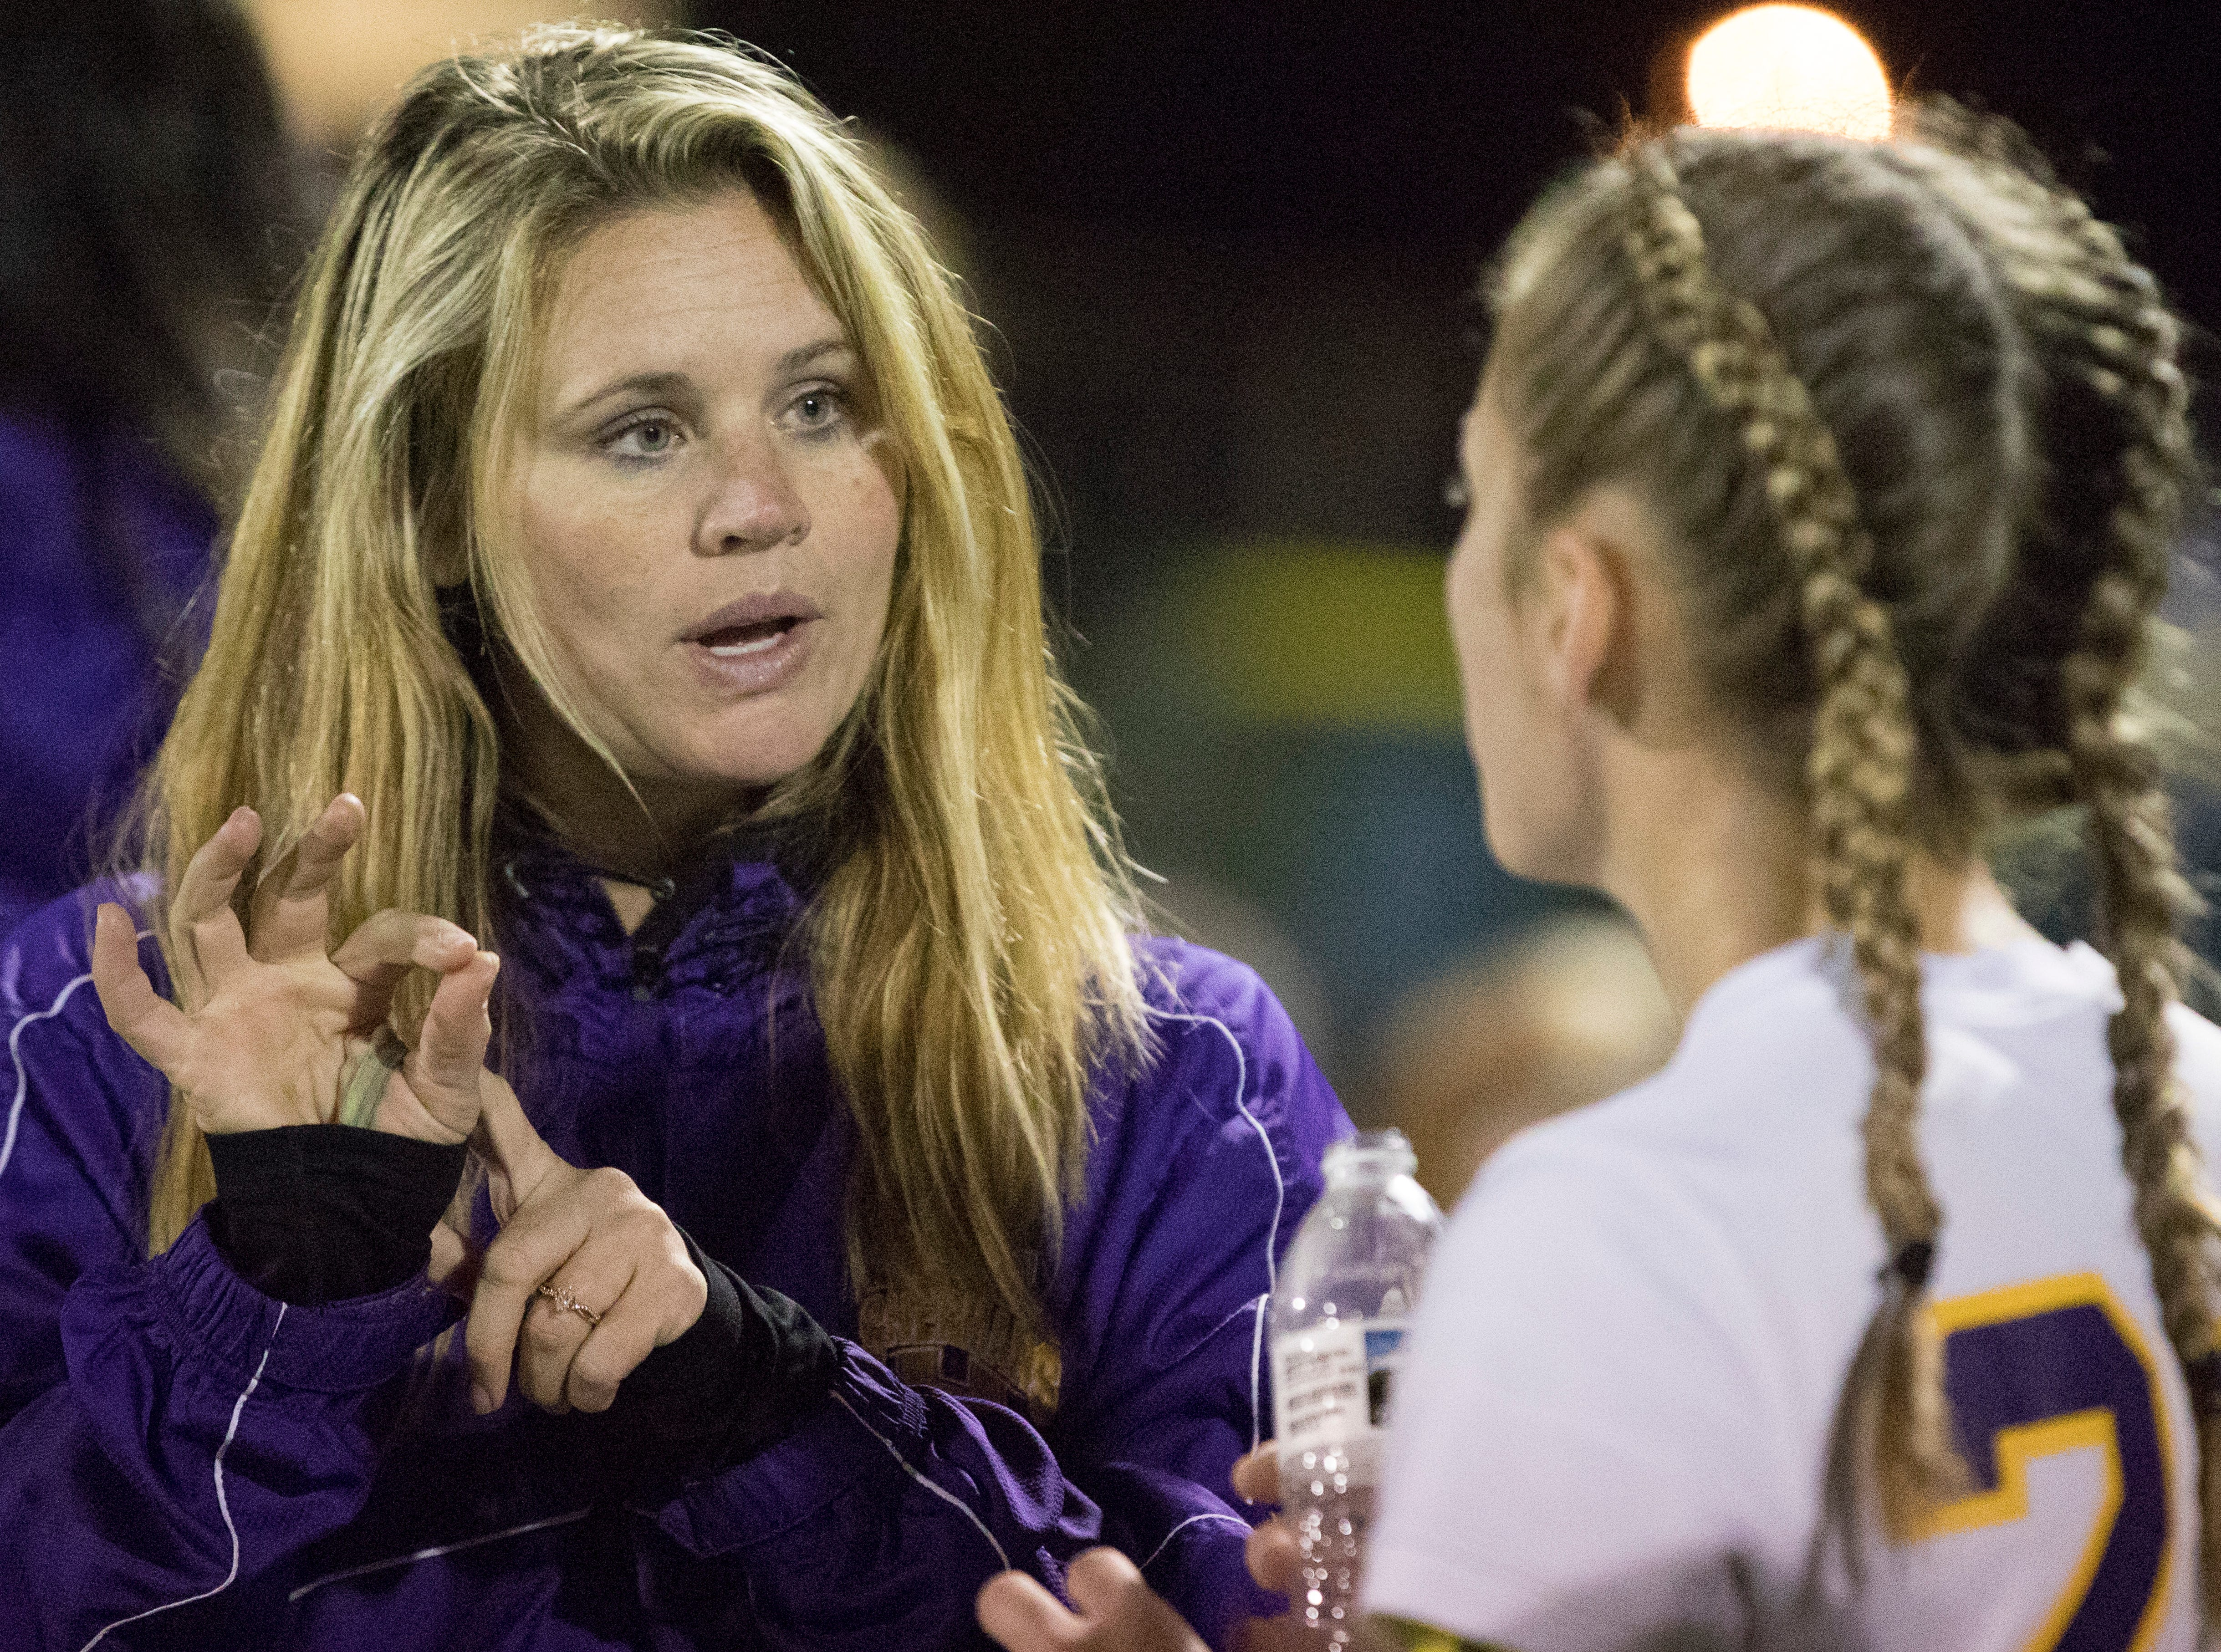 In a Division II soccer regional semifinals match between Unioto and Big Walnut, Big Walnut defeated Unioto 2-0 Tuesday night at Bloom-Carroll High School in Carroll, Ohio.